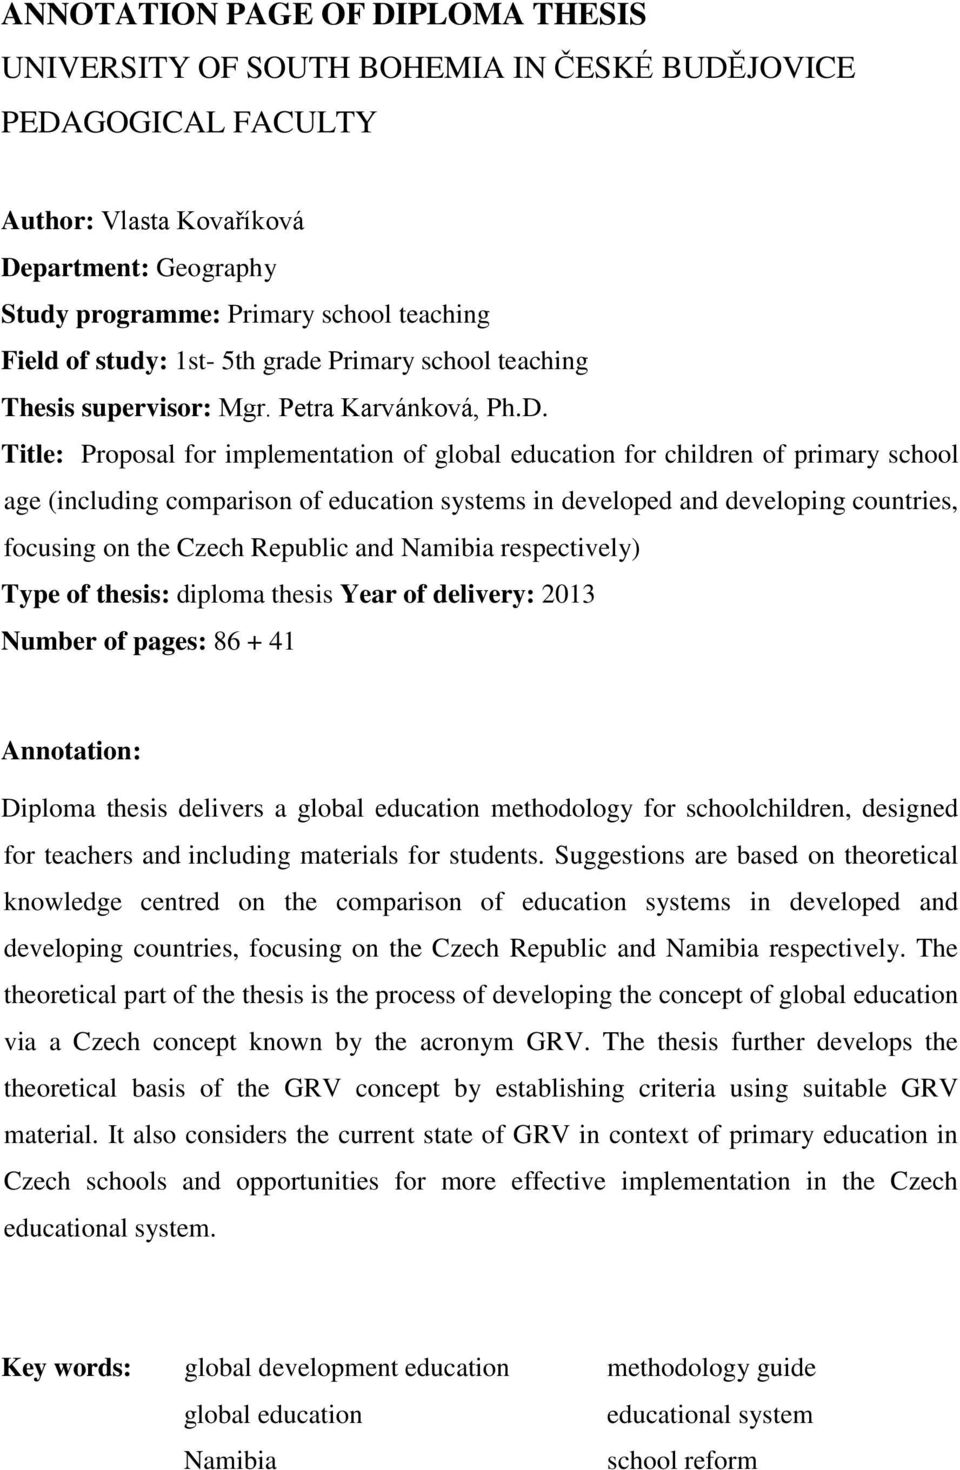 Title: Proposal for implementation of global education for children of primary school age (including comparison of education systems in developed and developing countries, focusing on the Czech